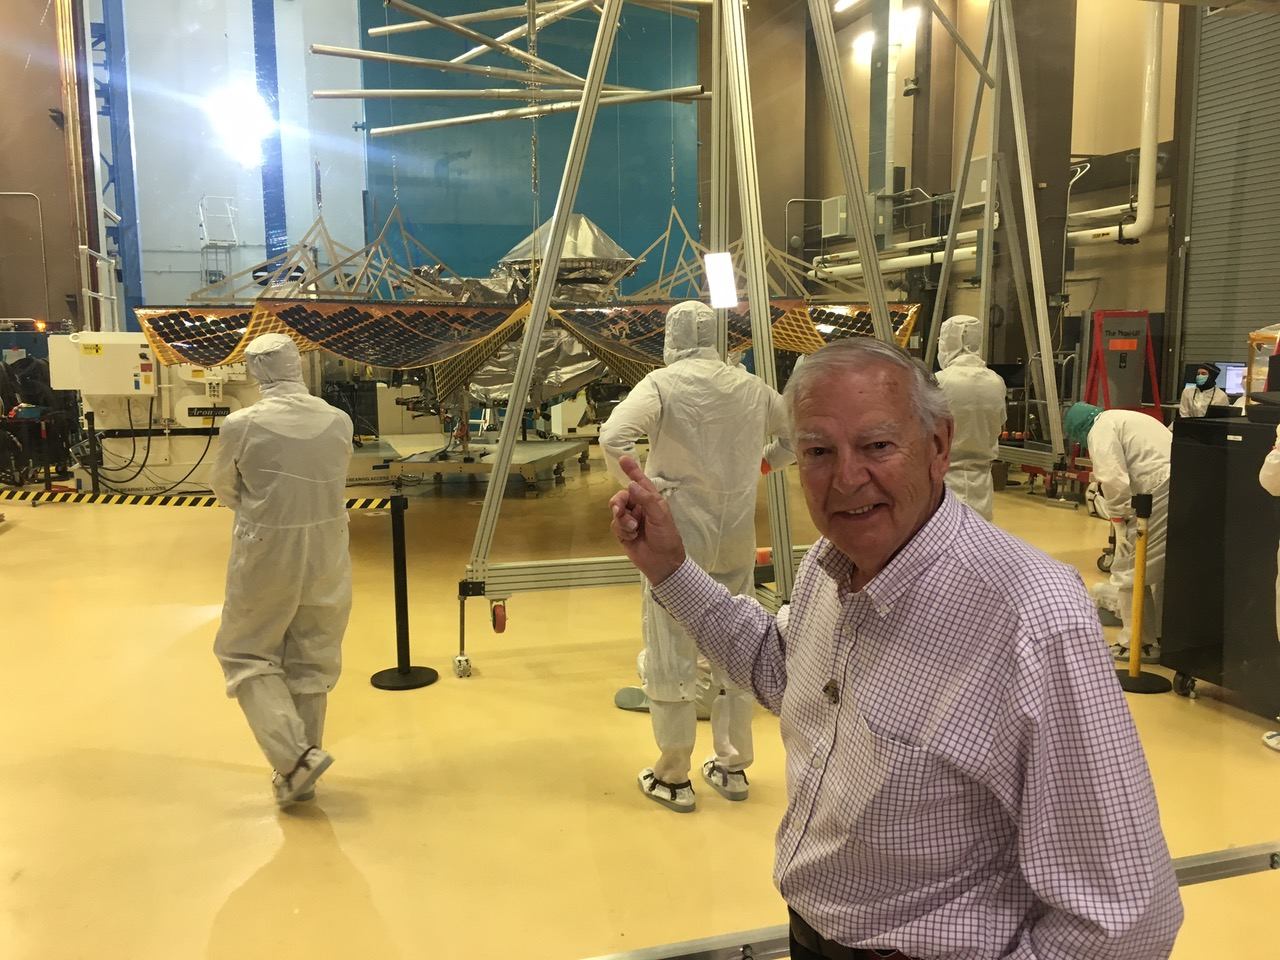 Discoverer of Lucy asteroid mission's namesake fossil excited to watch Saturday launch